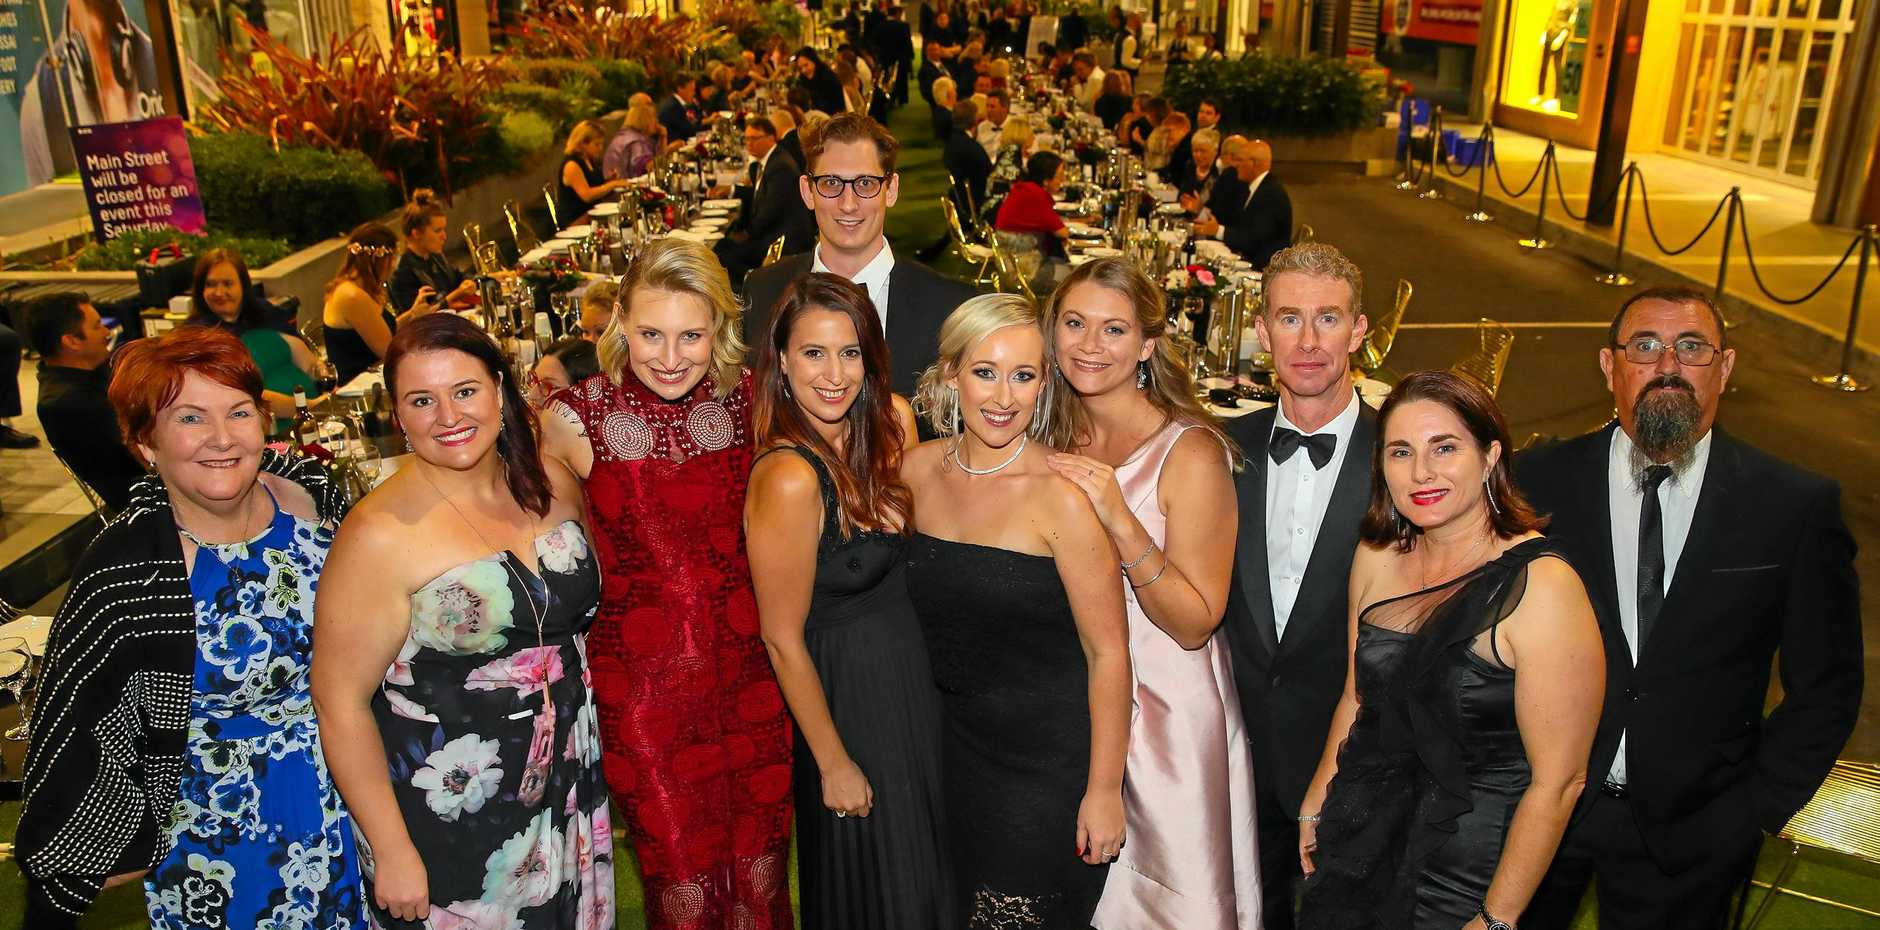 NOT TO BE MISSED: The Ipswich Hospice Jacaranda Dinner is back after a successful inaugural event last year. Don't miss a stunning night under the stars.